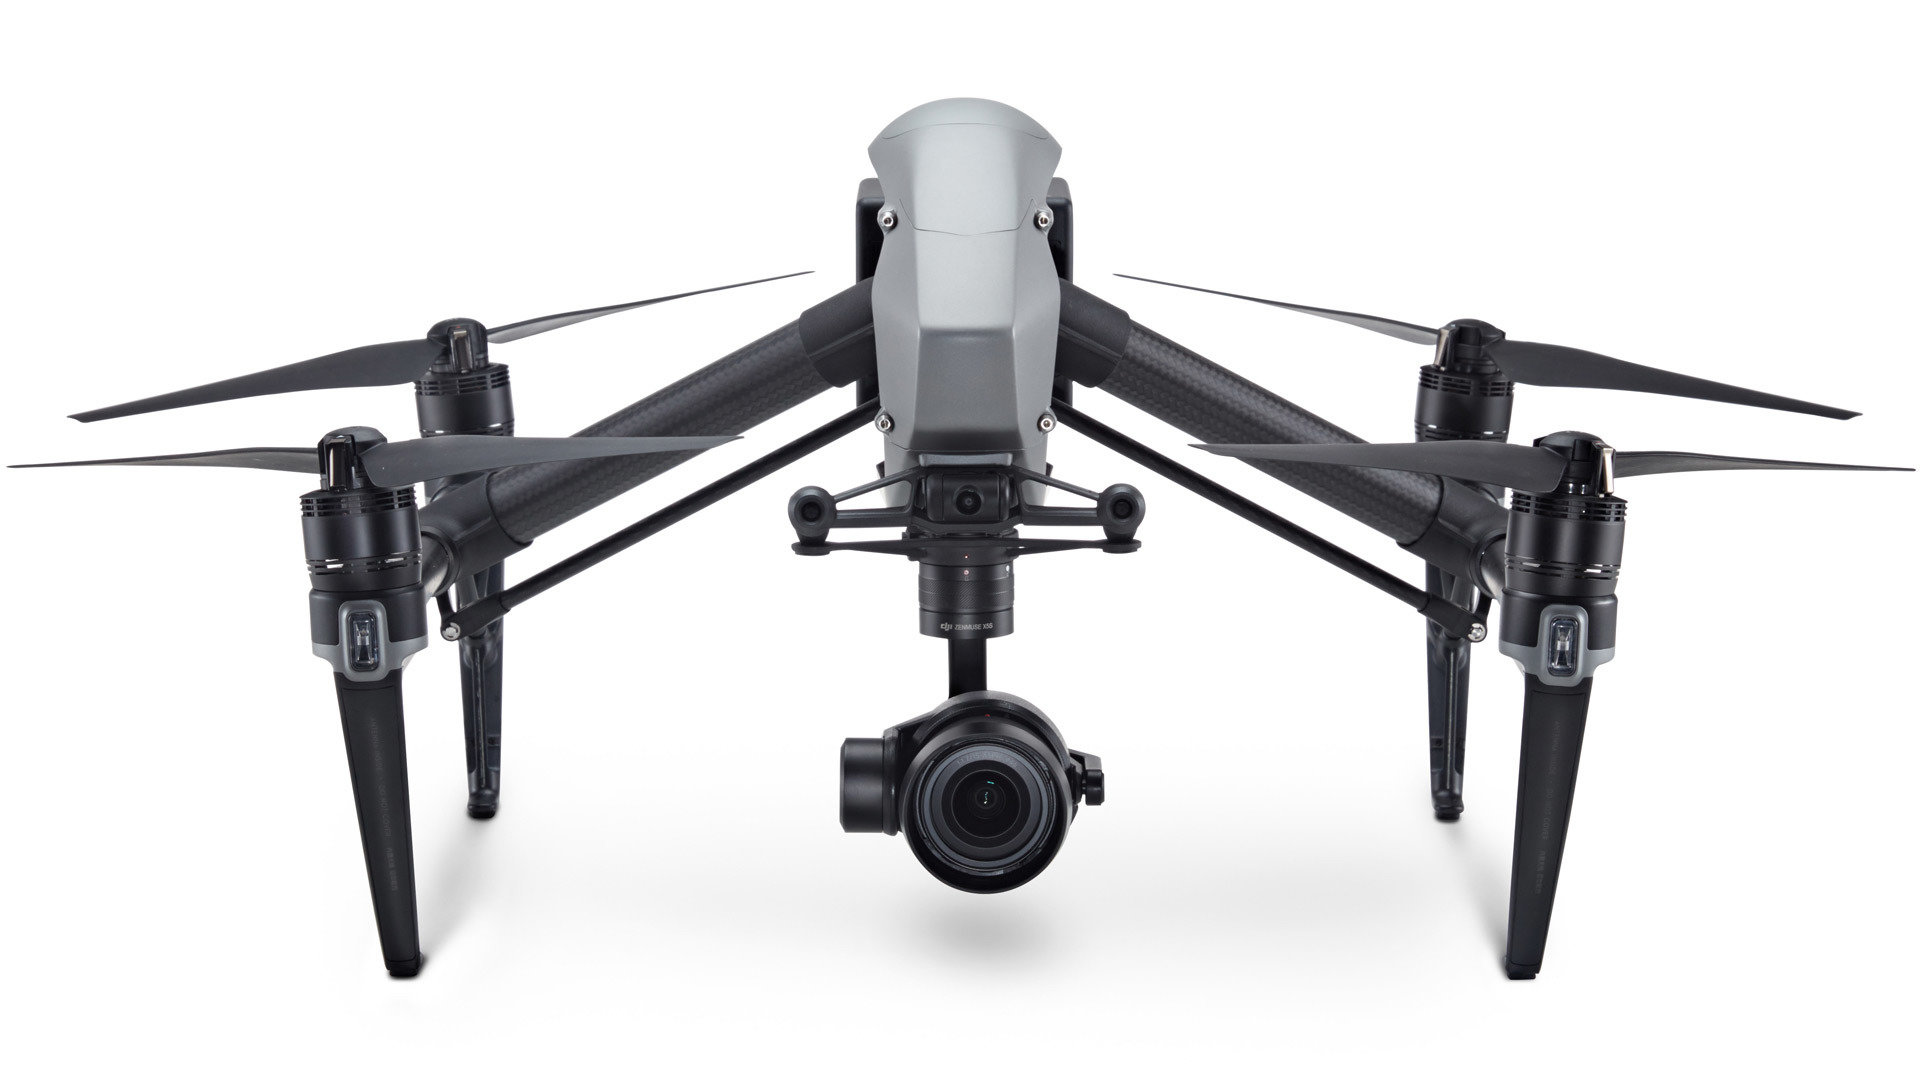 The foldable travelfriendly Mavic is as unobtrusive as a toy drone but with the performance features and image quality of a larger prosumer quad